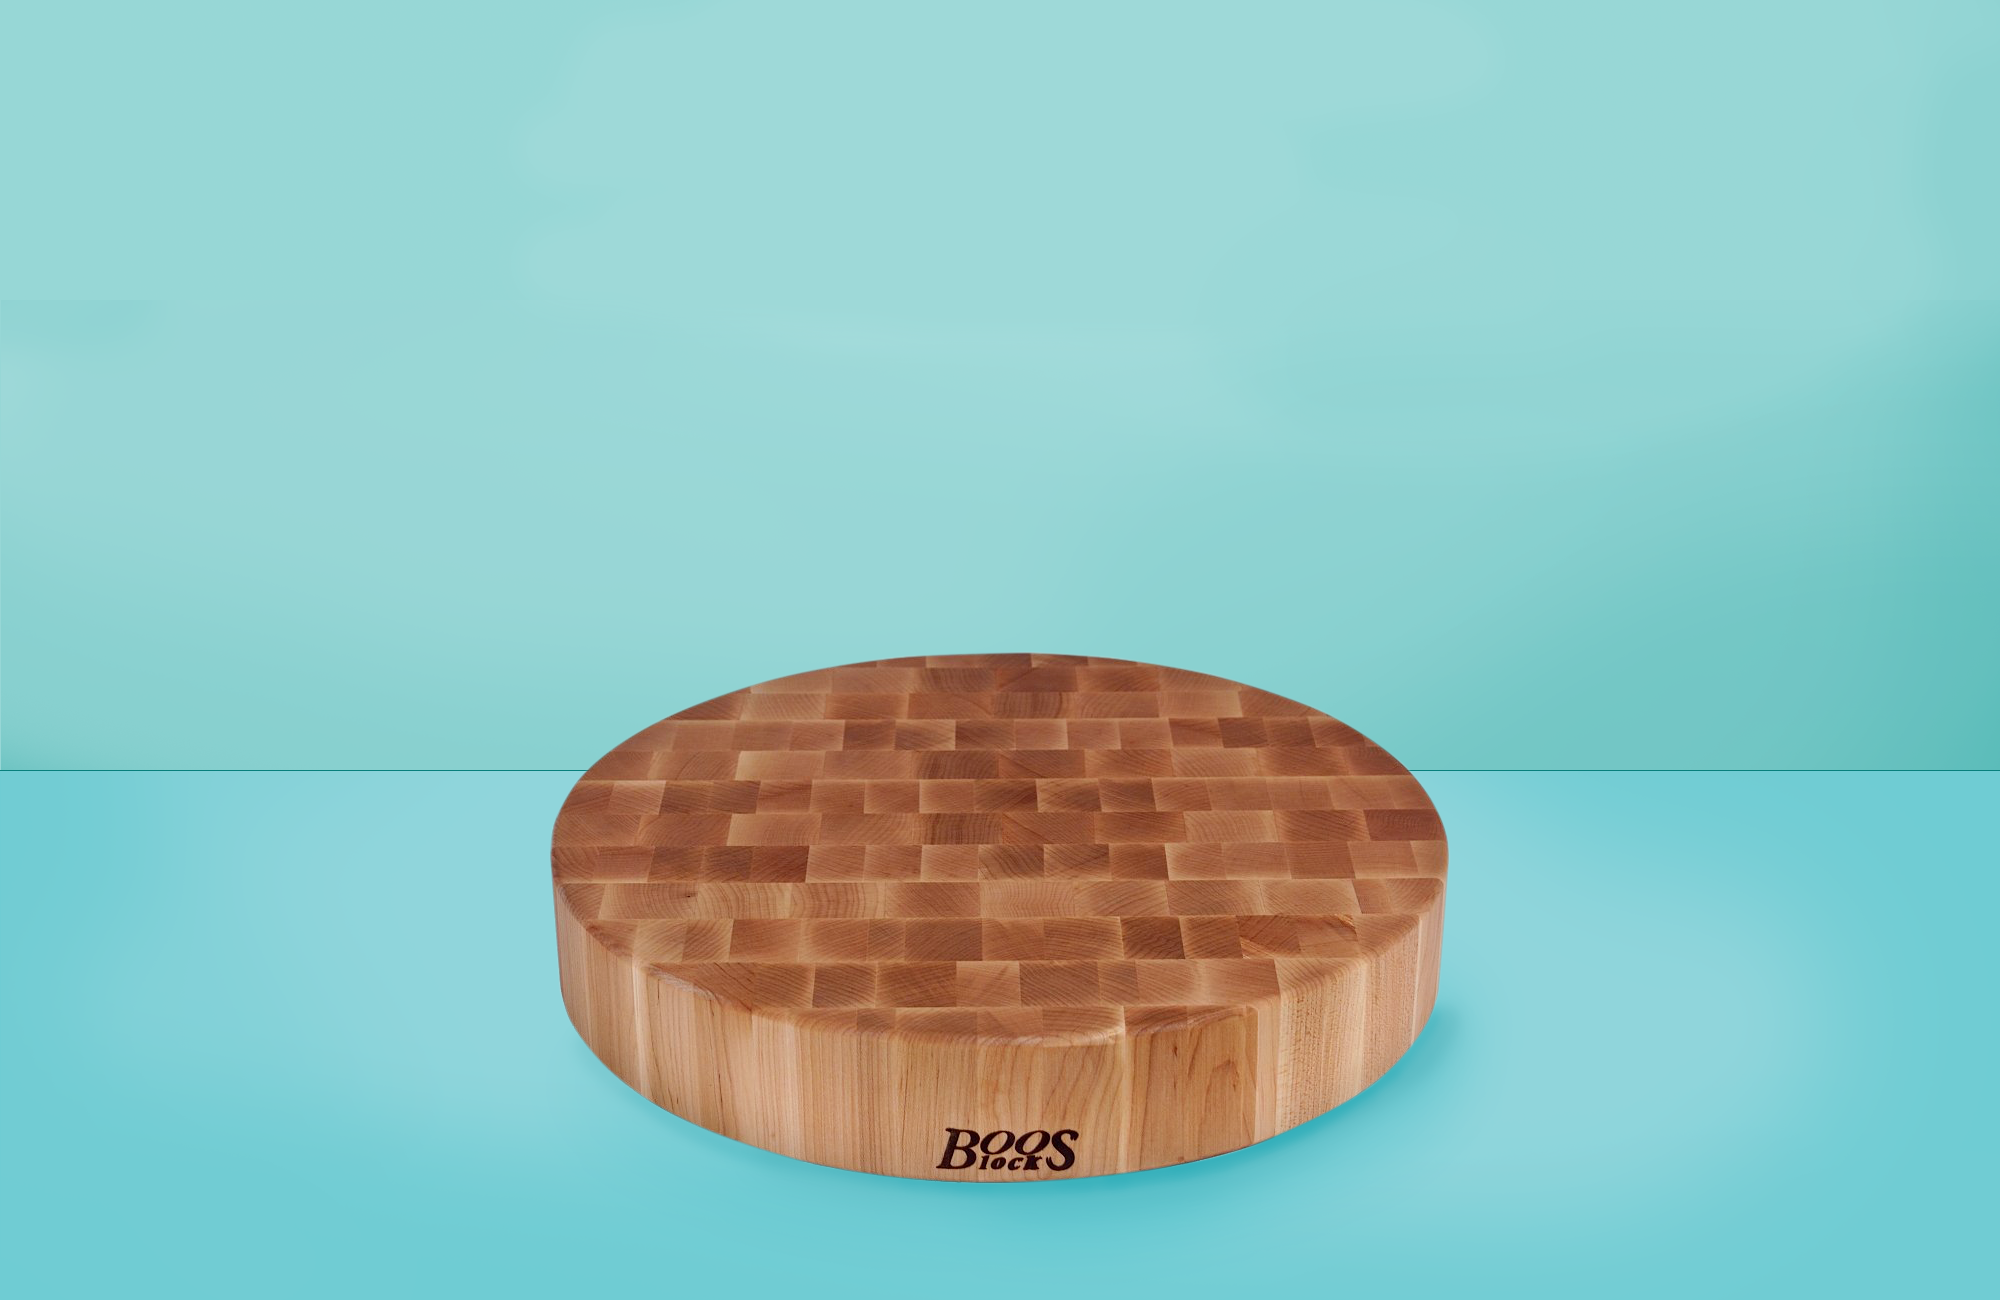 13 Best Cutting Boards 2021 Top Rated Wooden And Plastic Cutting Board